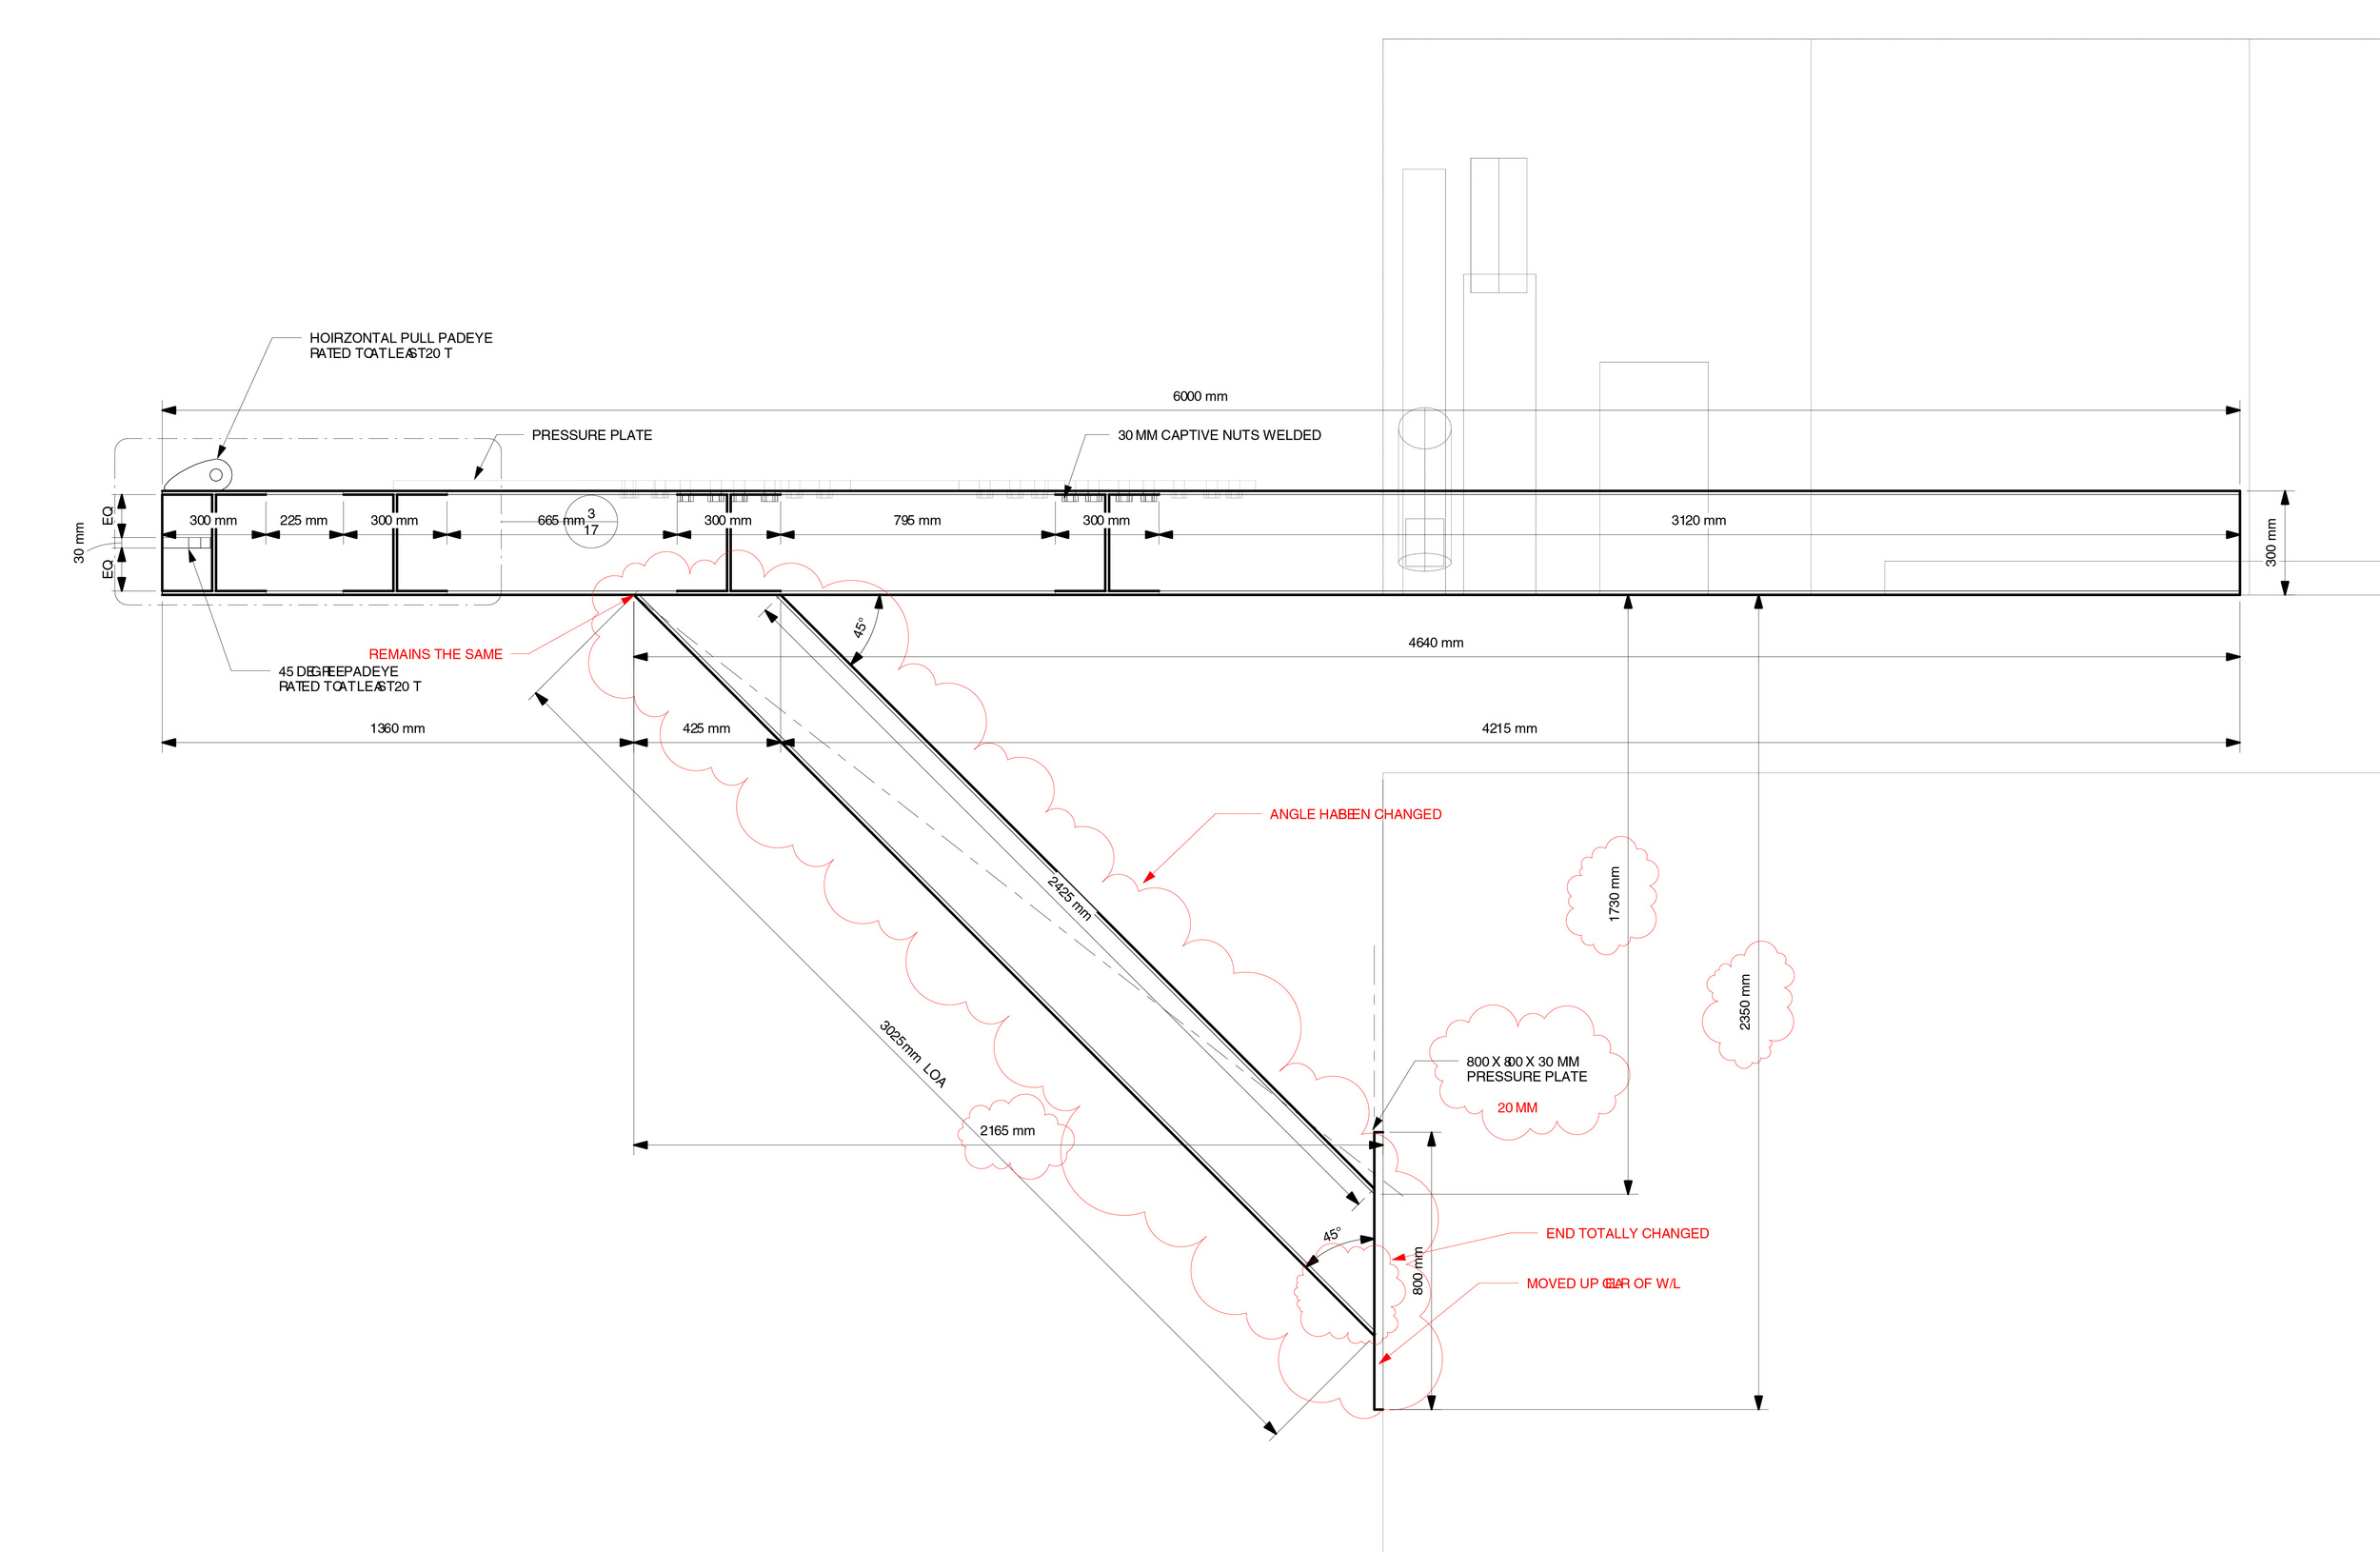 A side view drawing, from the construction set, showing dimensional data and markups (in red)